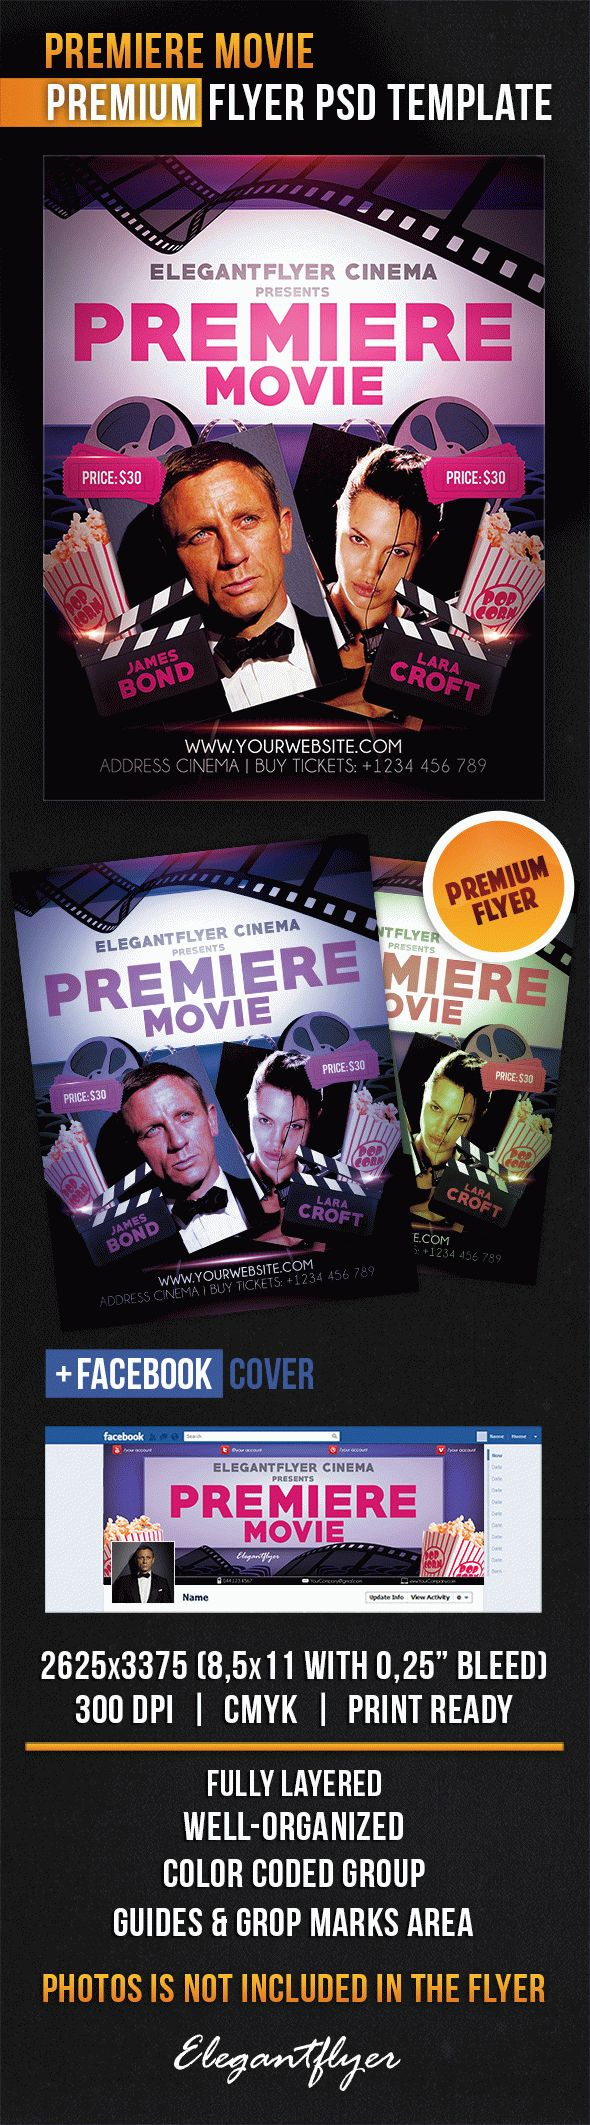 premiere movie  u2013 flyer psd template  u2013 by elegantflyer